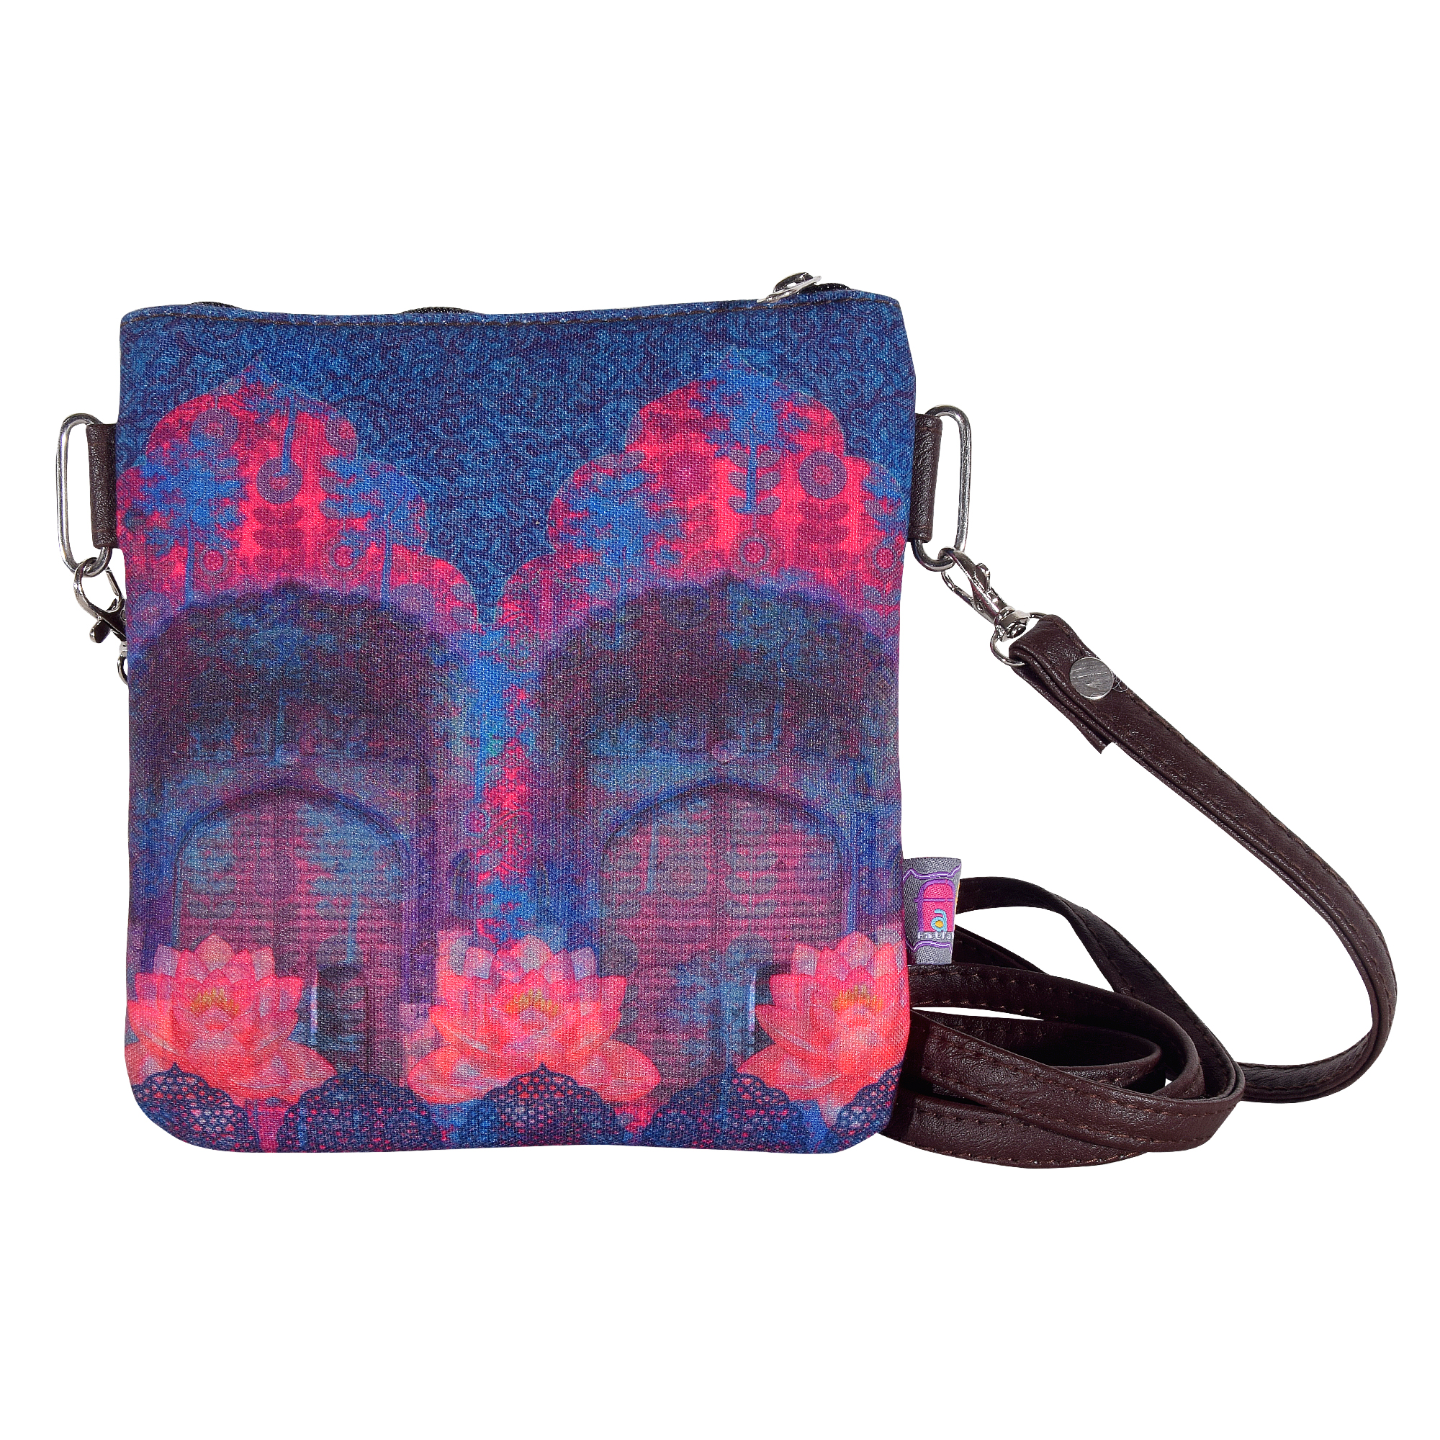 Cool Blue Rajasthani Small Sling Bag